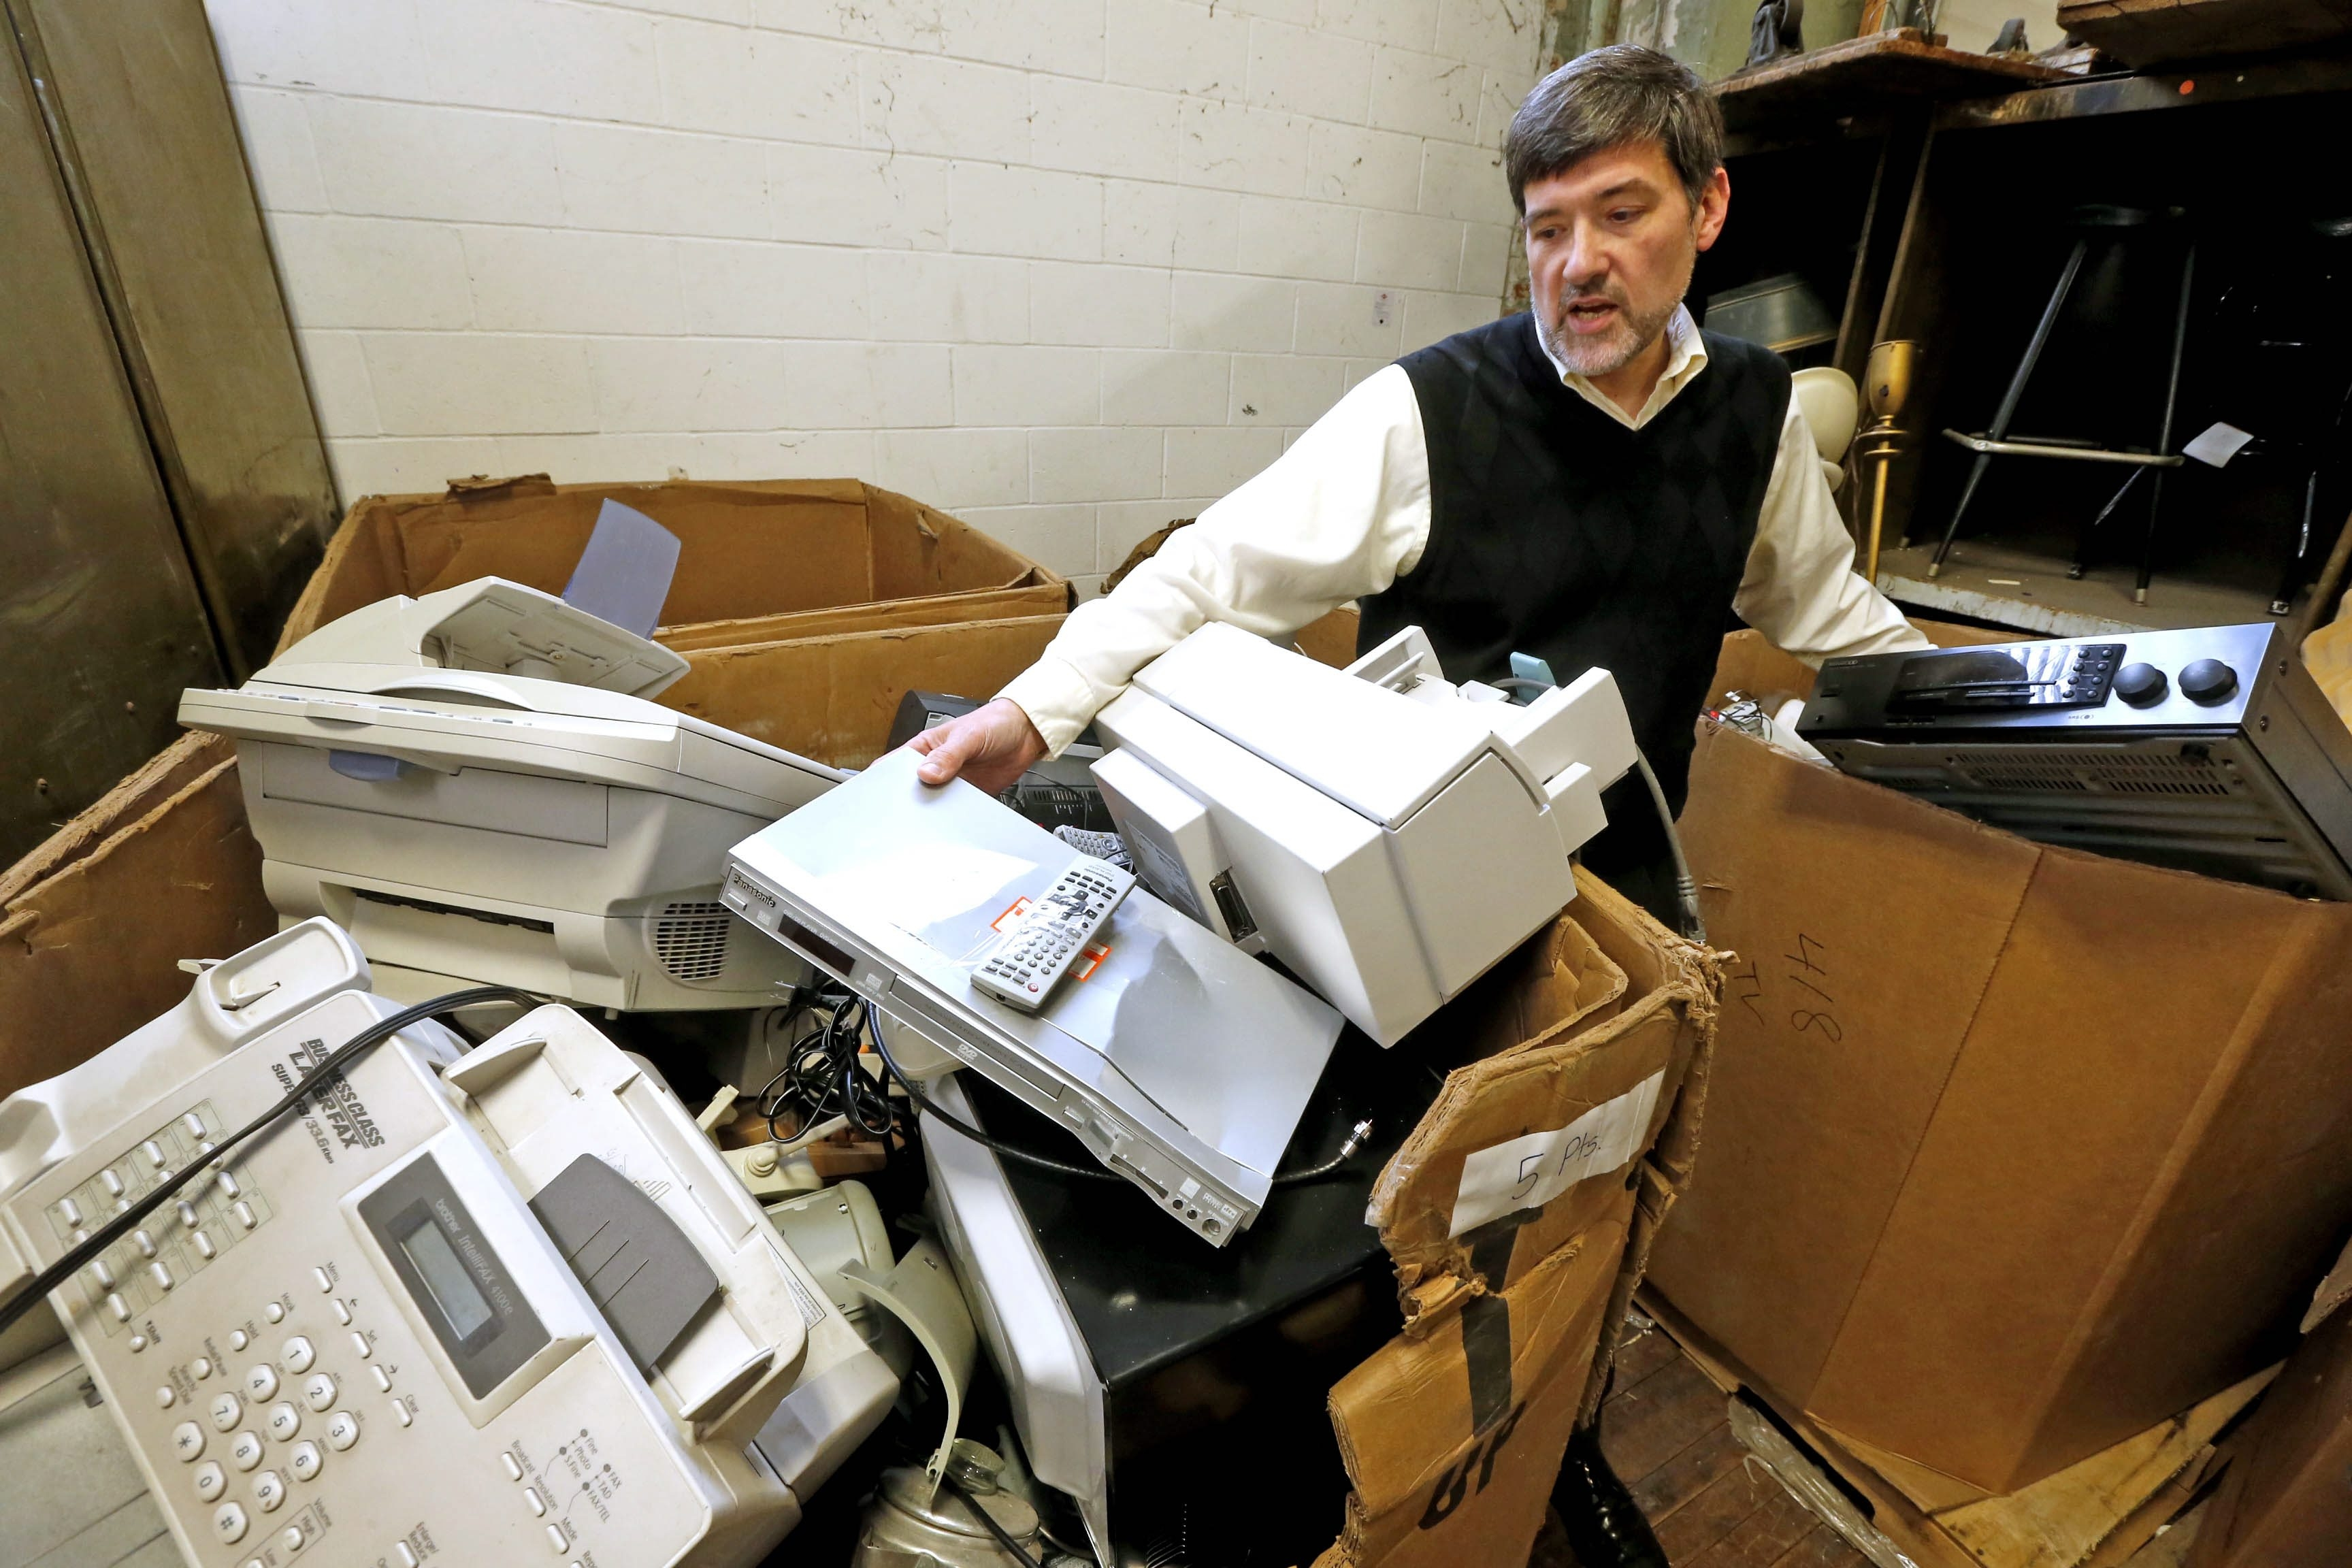 Director Mark Zirnheld places a DVD player in a carton filled with electronic devices that people have donated to the St. Vincent de Paul Society.